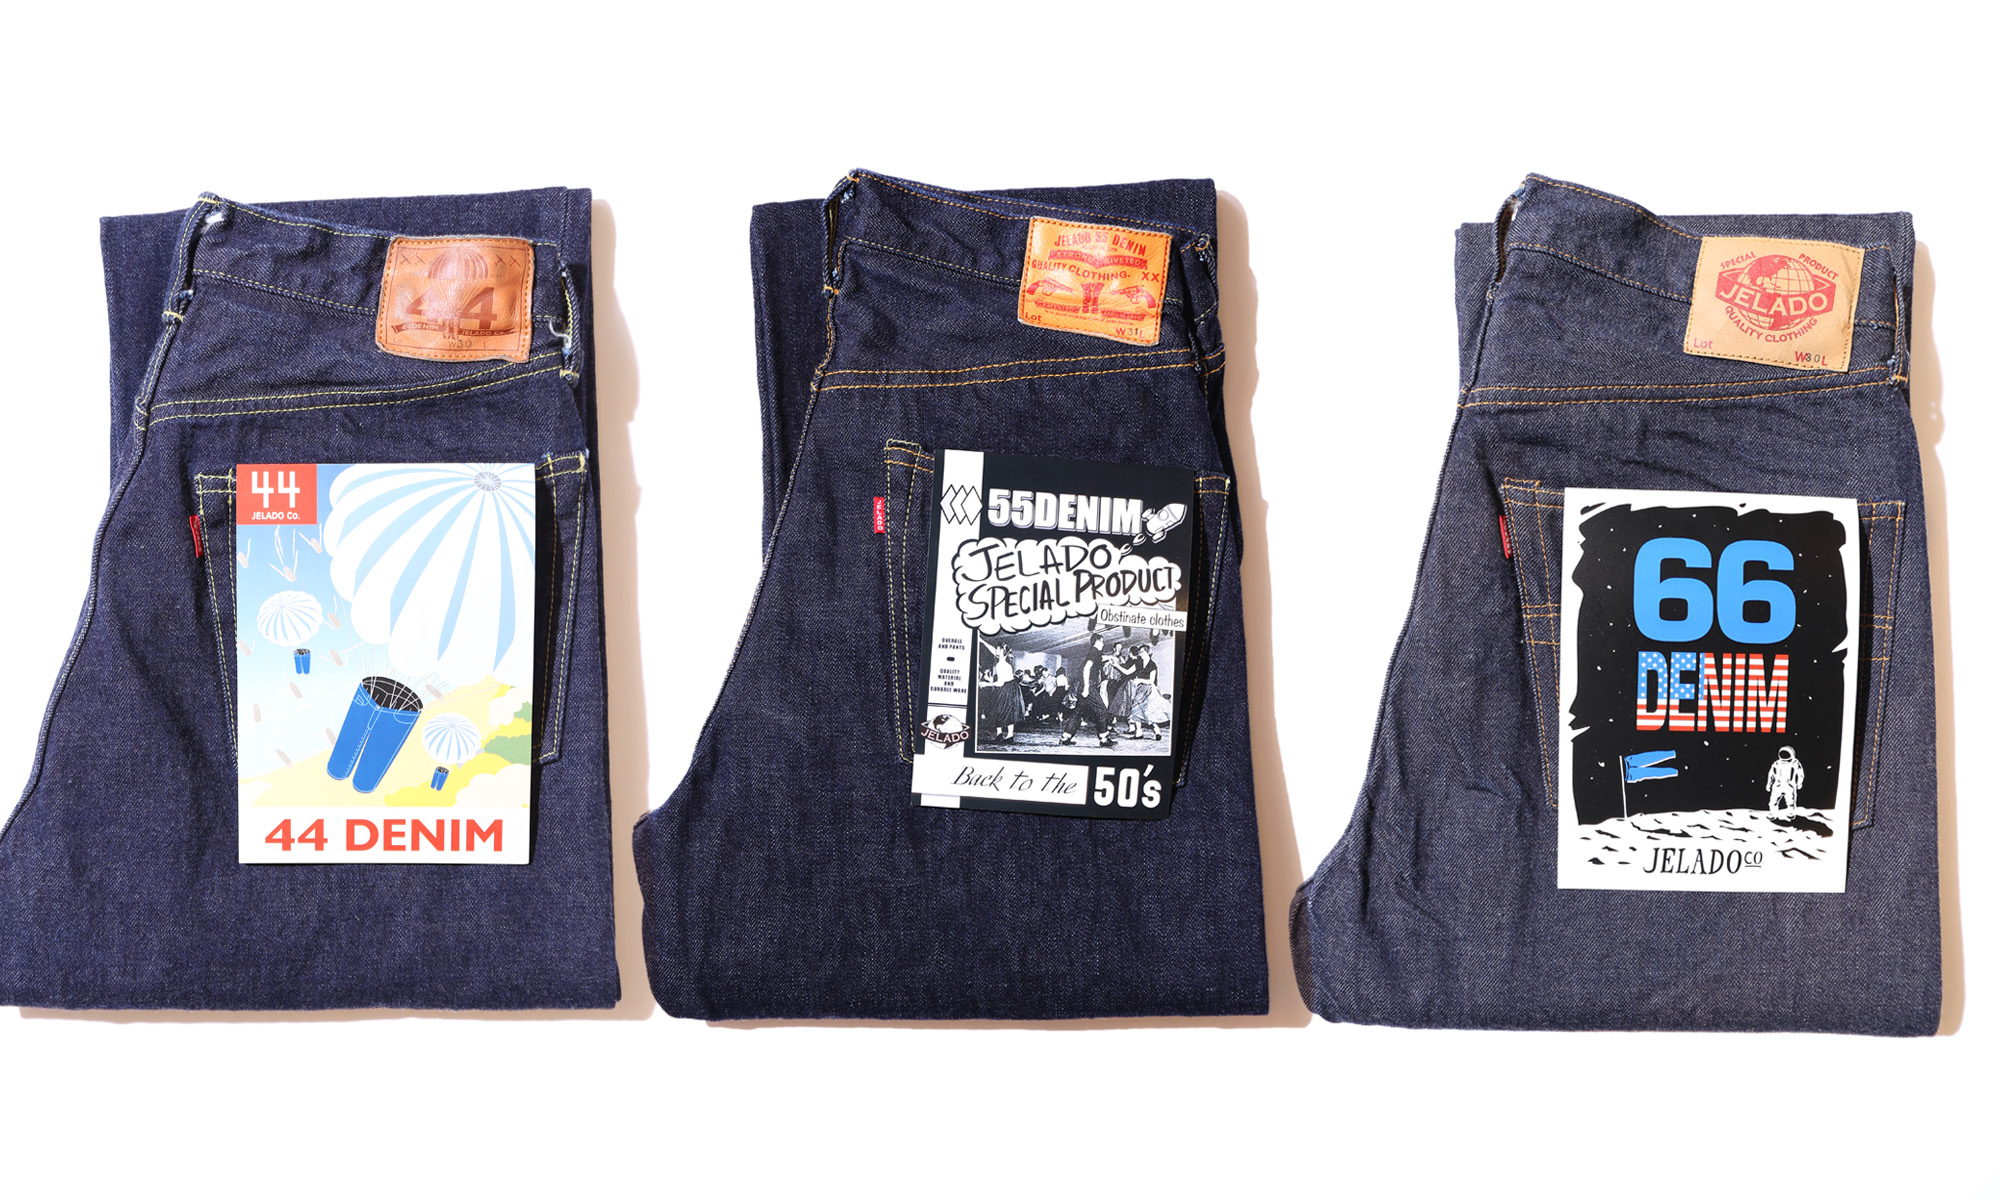 JERADO -5 POCKET DENIM PANTS inspired by vintage-